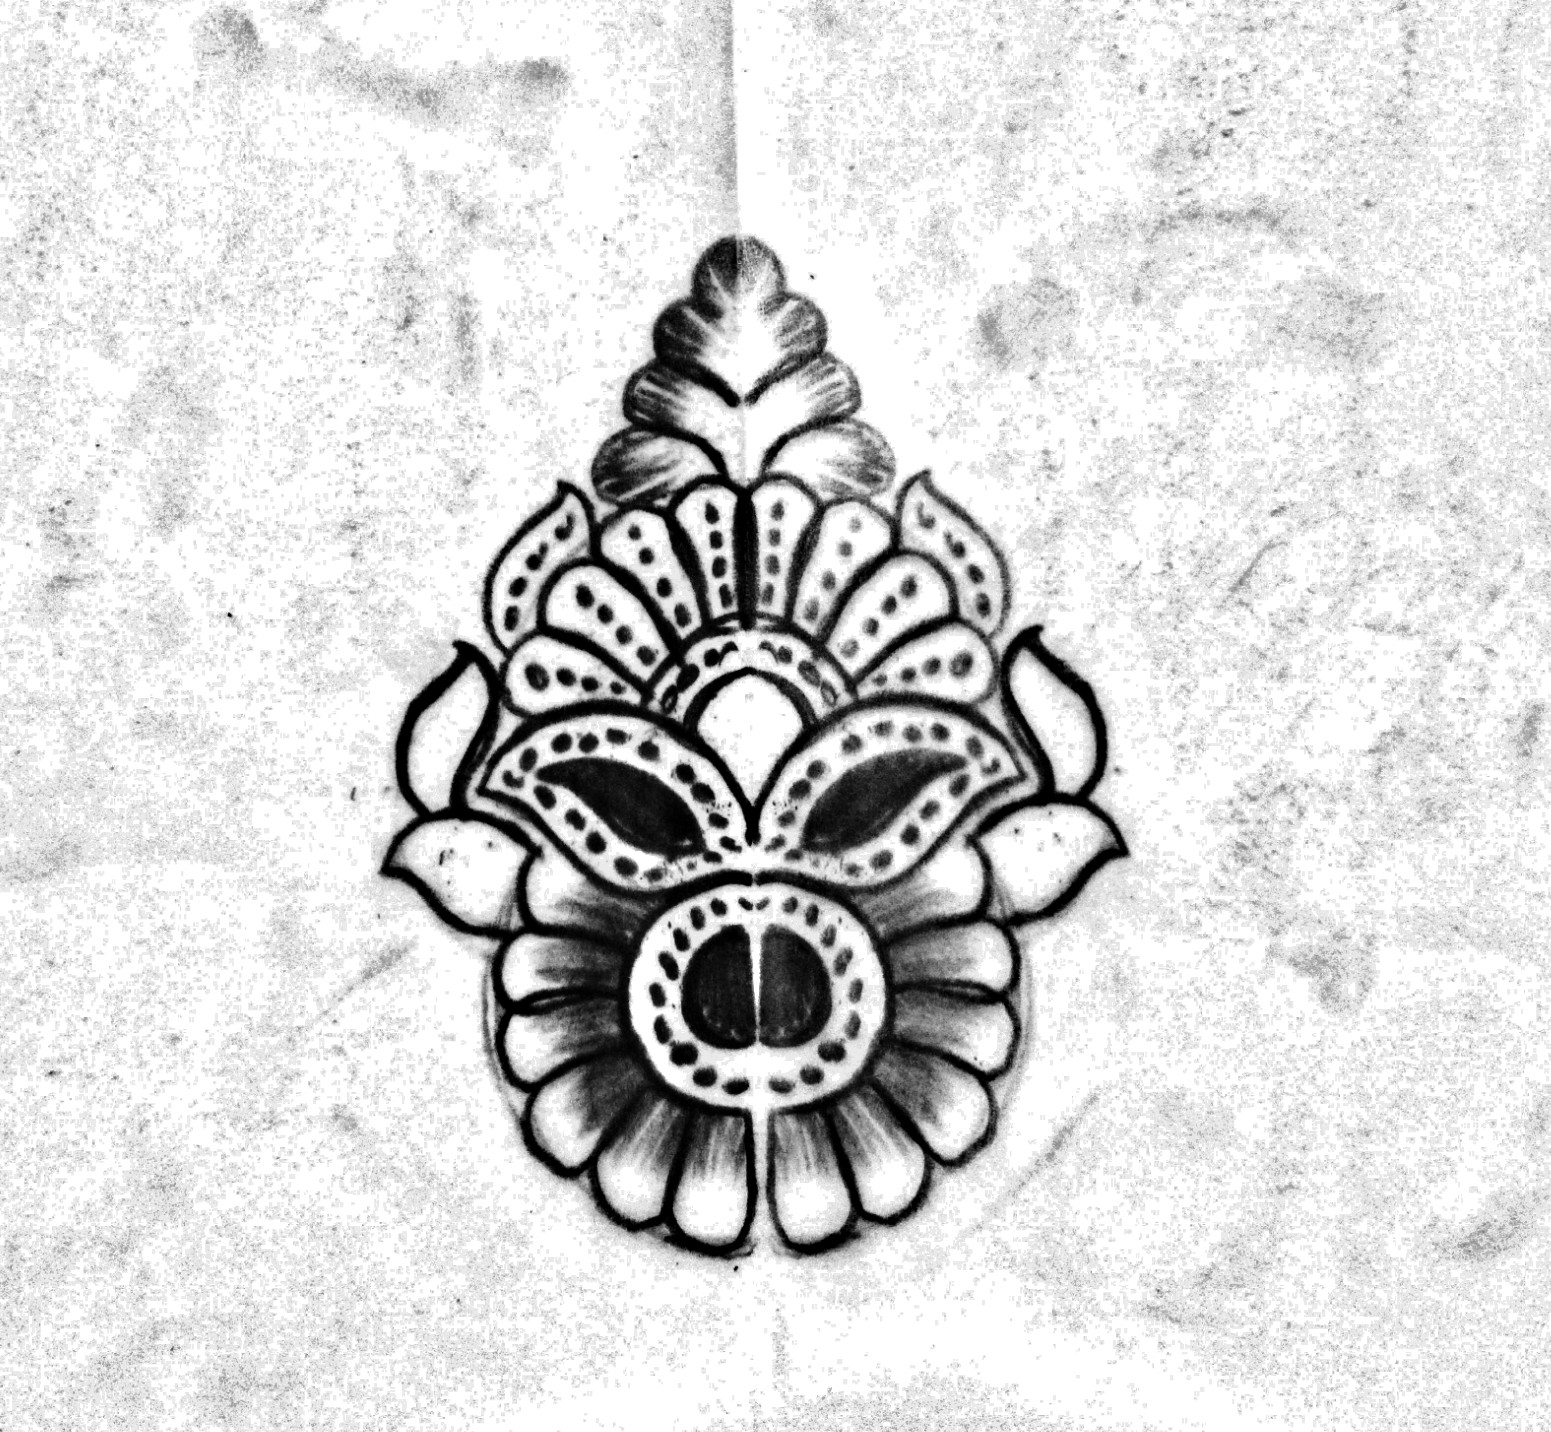 Cutwork butta khala design drawings for hand embroidery/hand embroidery flowers designs images free download